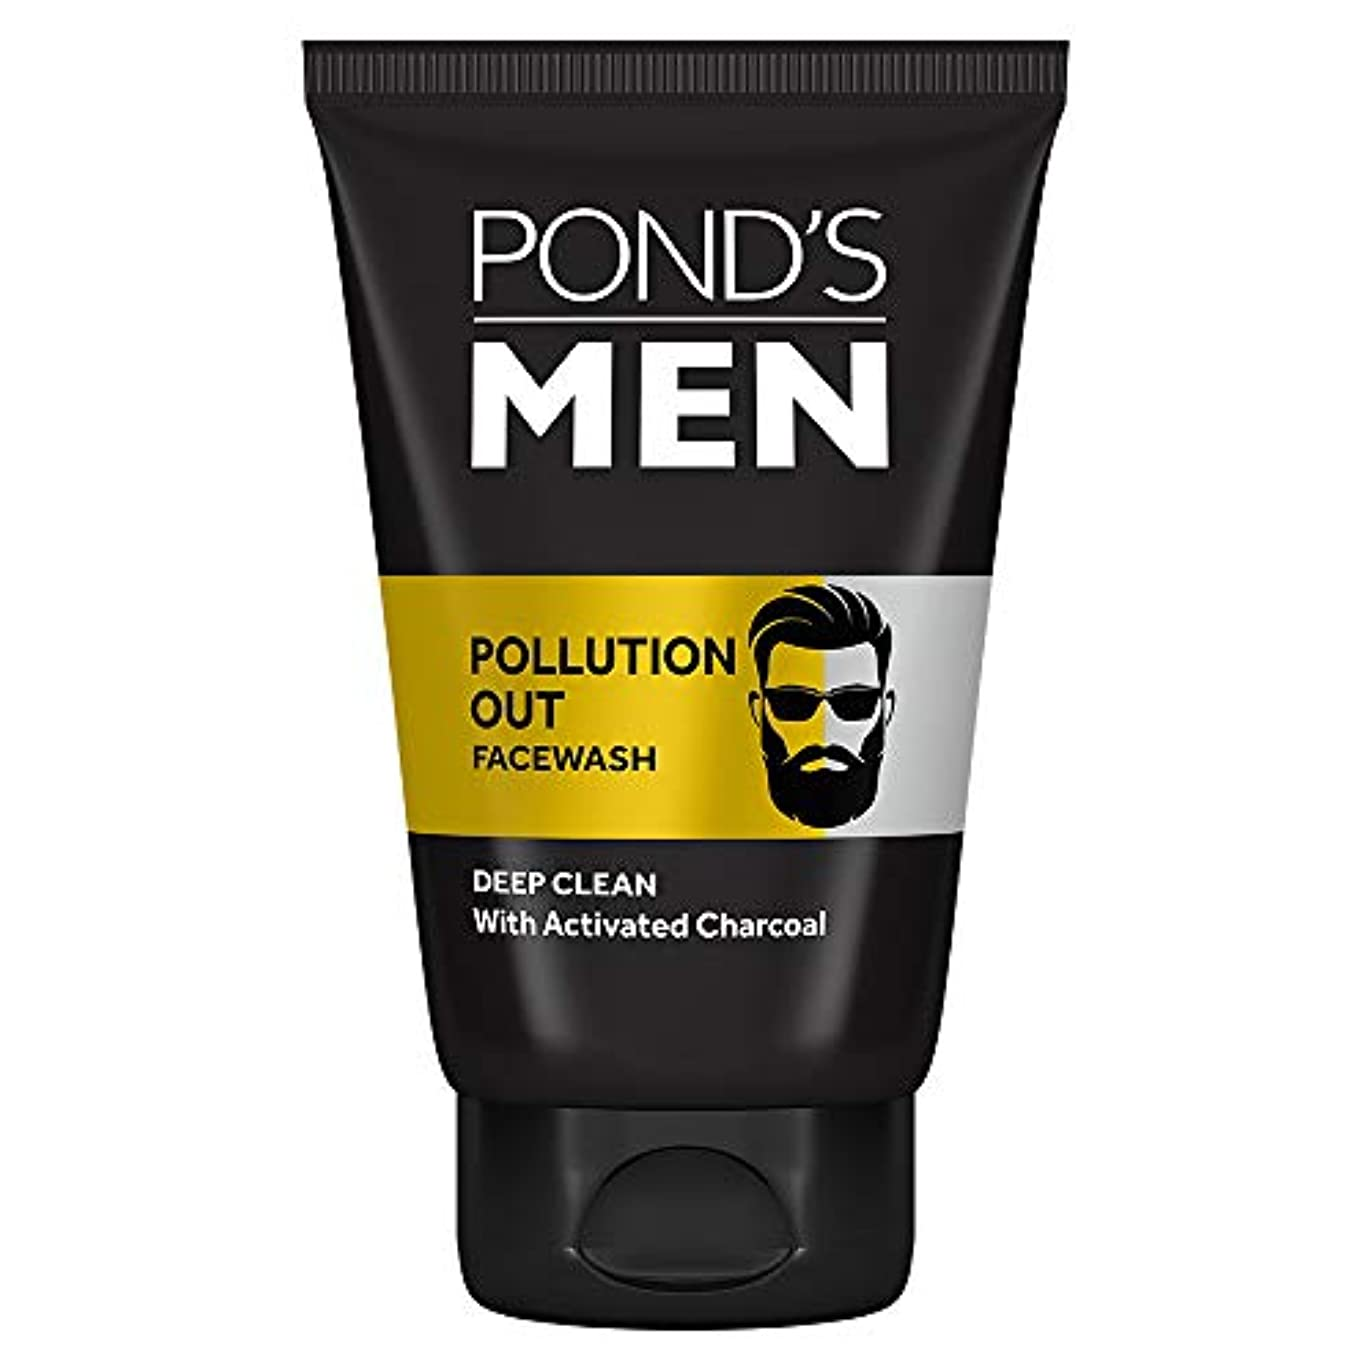 Pond's Men Pollution Out Face Wash, Feel Fresh 100gm